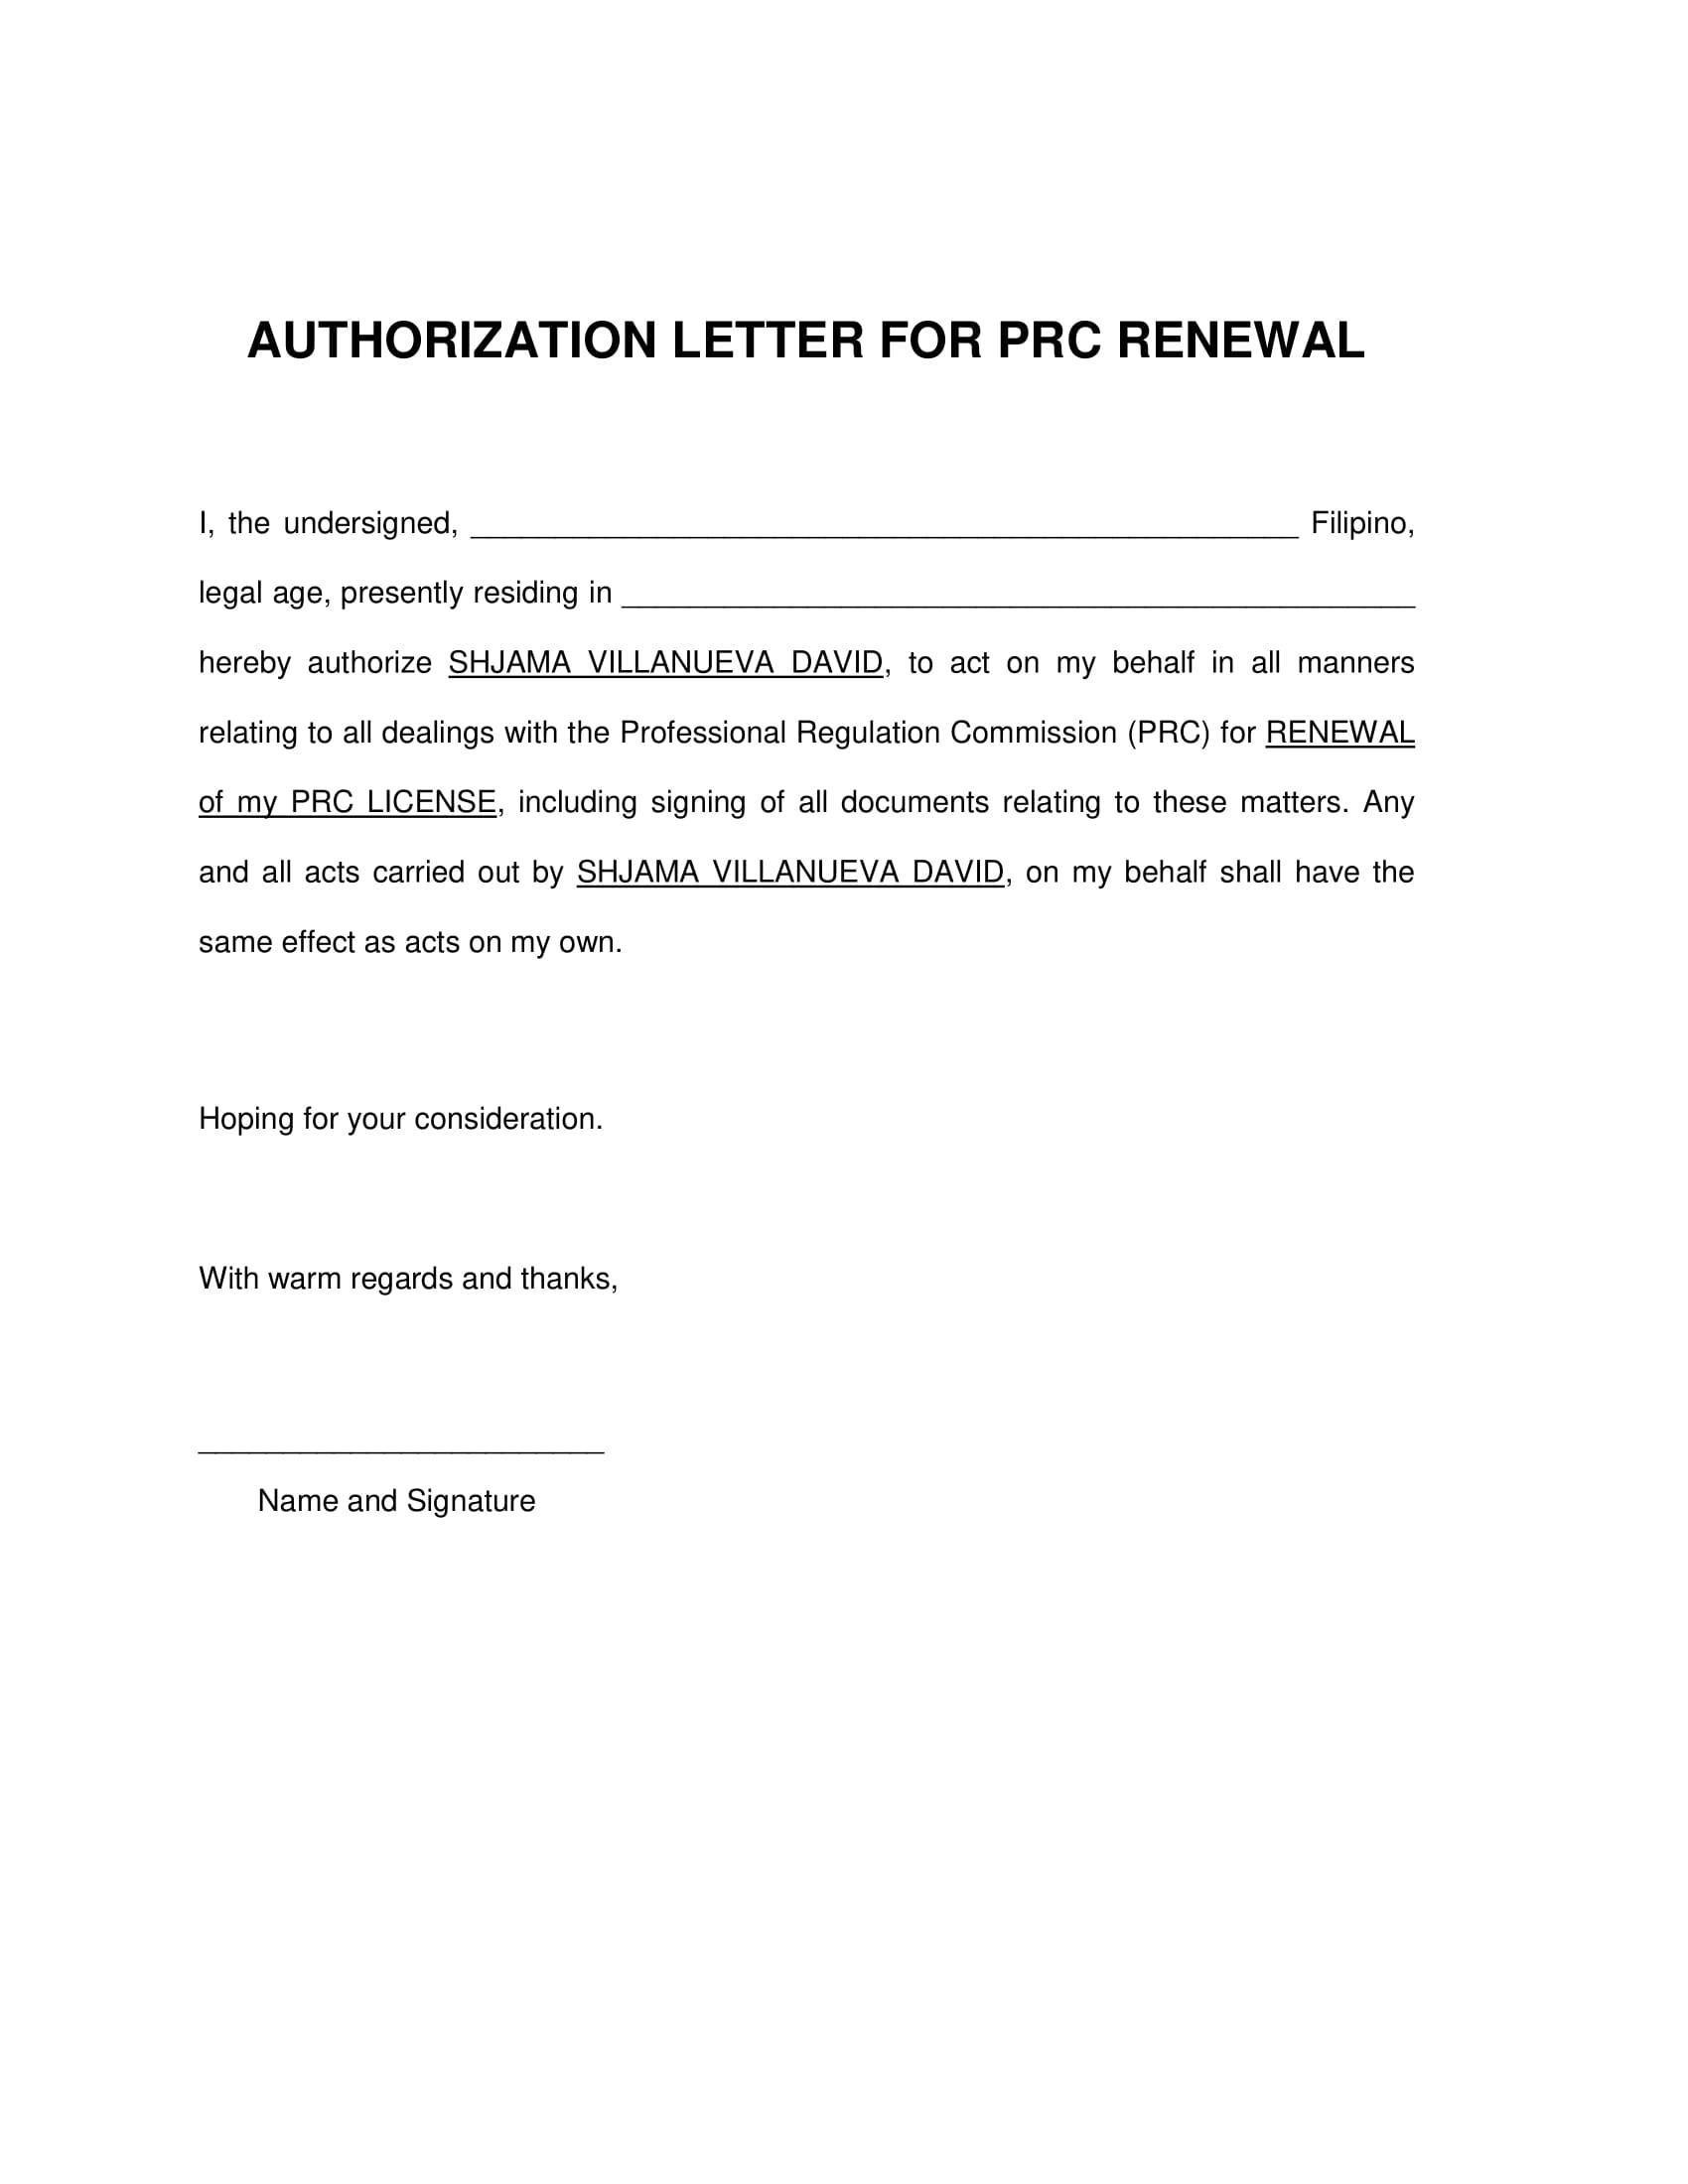 authorization letter to act on behalf for prc renewal example 1